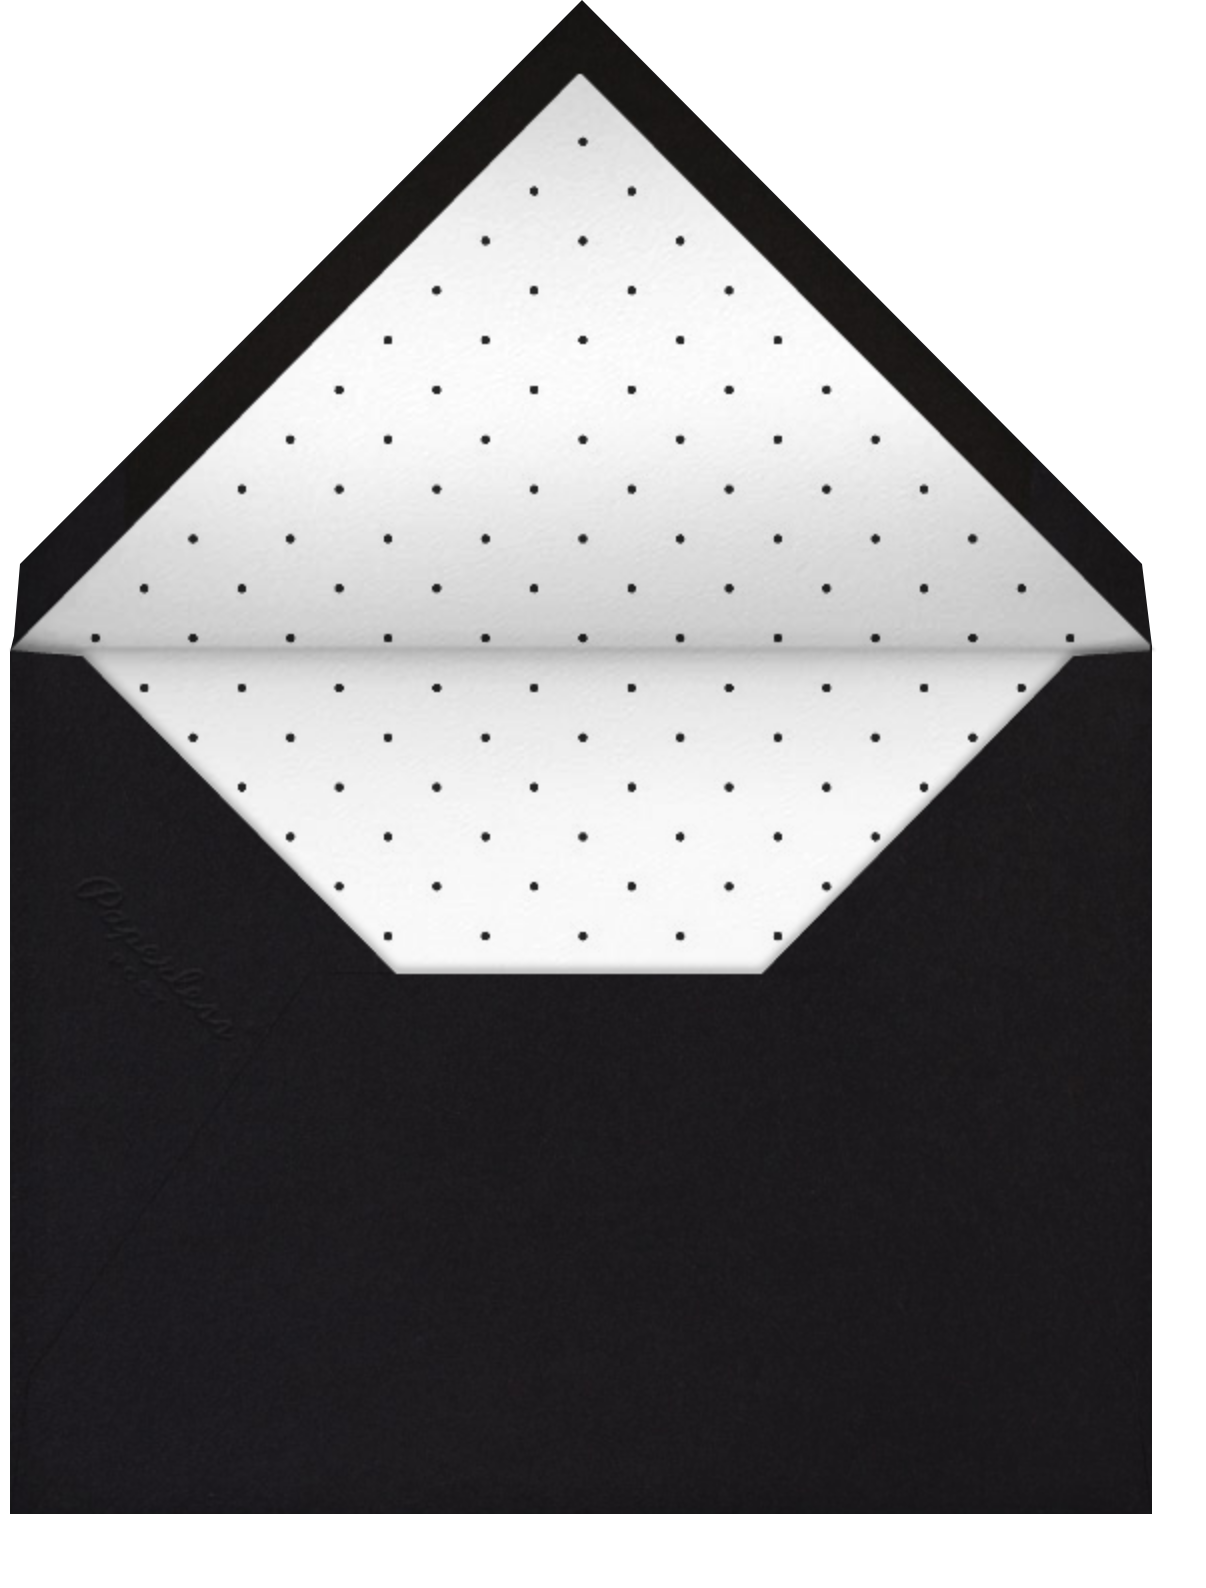 Shhhhhhh! - Black - Mr. Boddington's Studio - Adult birthday - envelope back